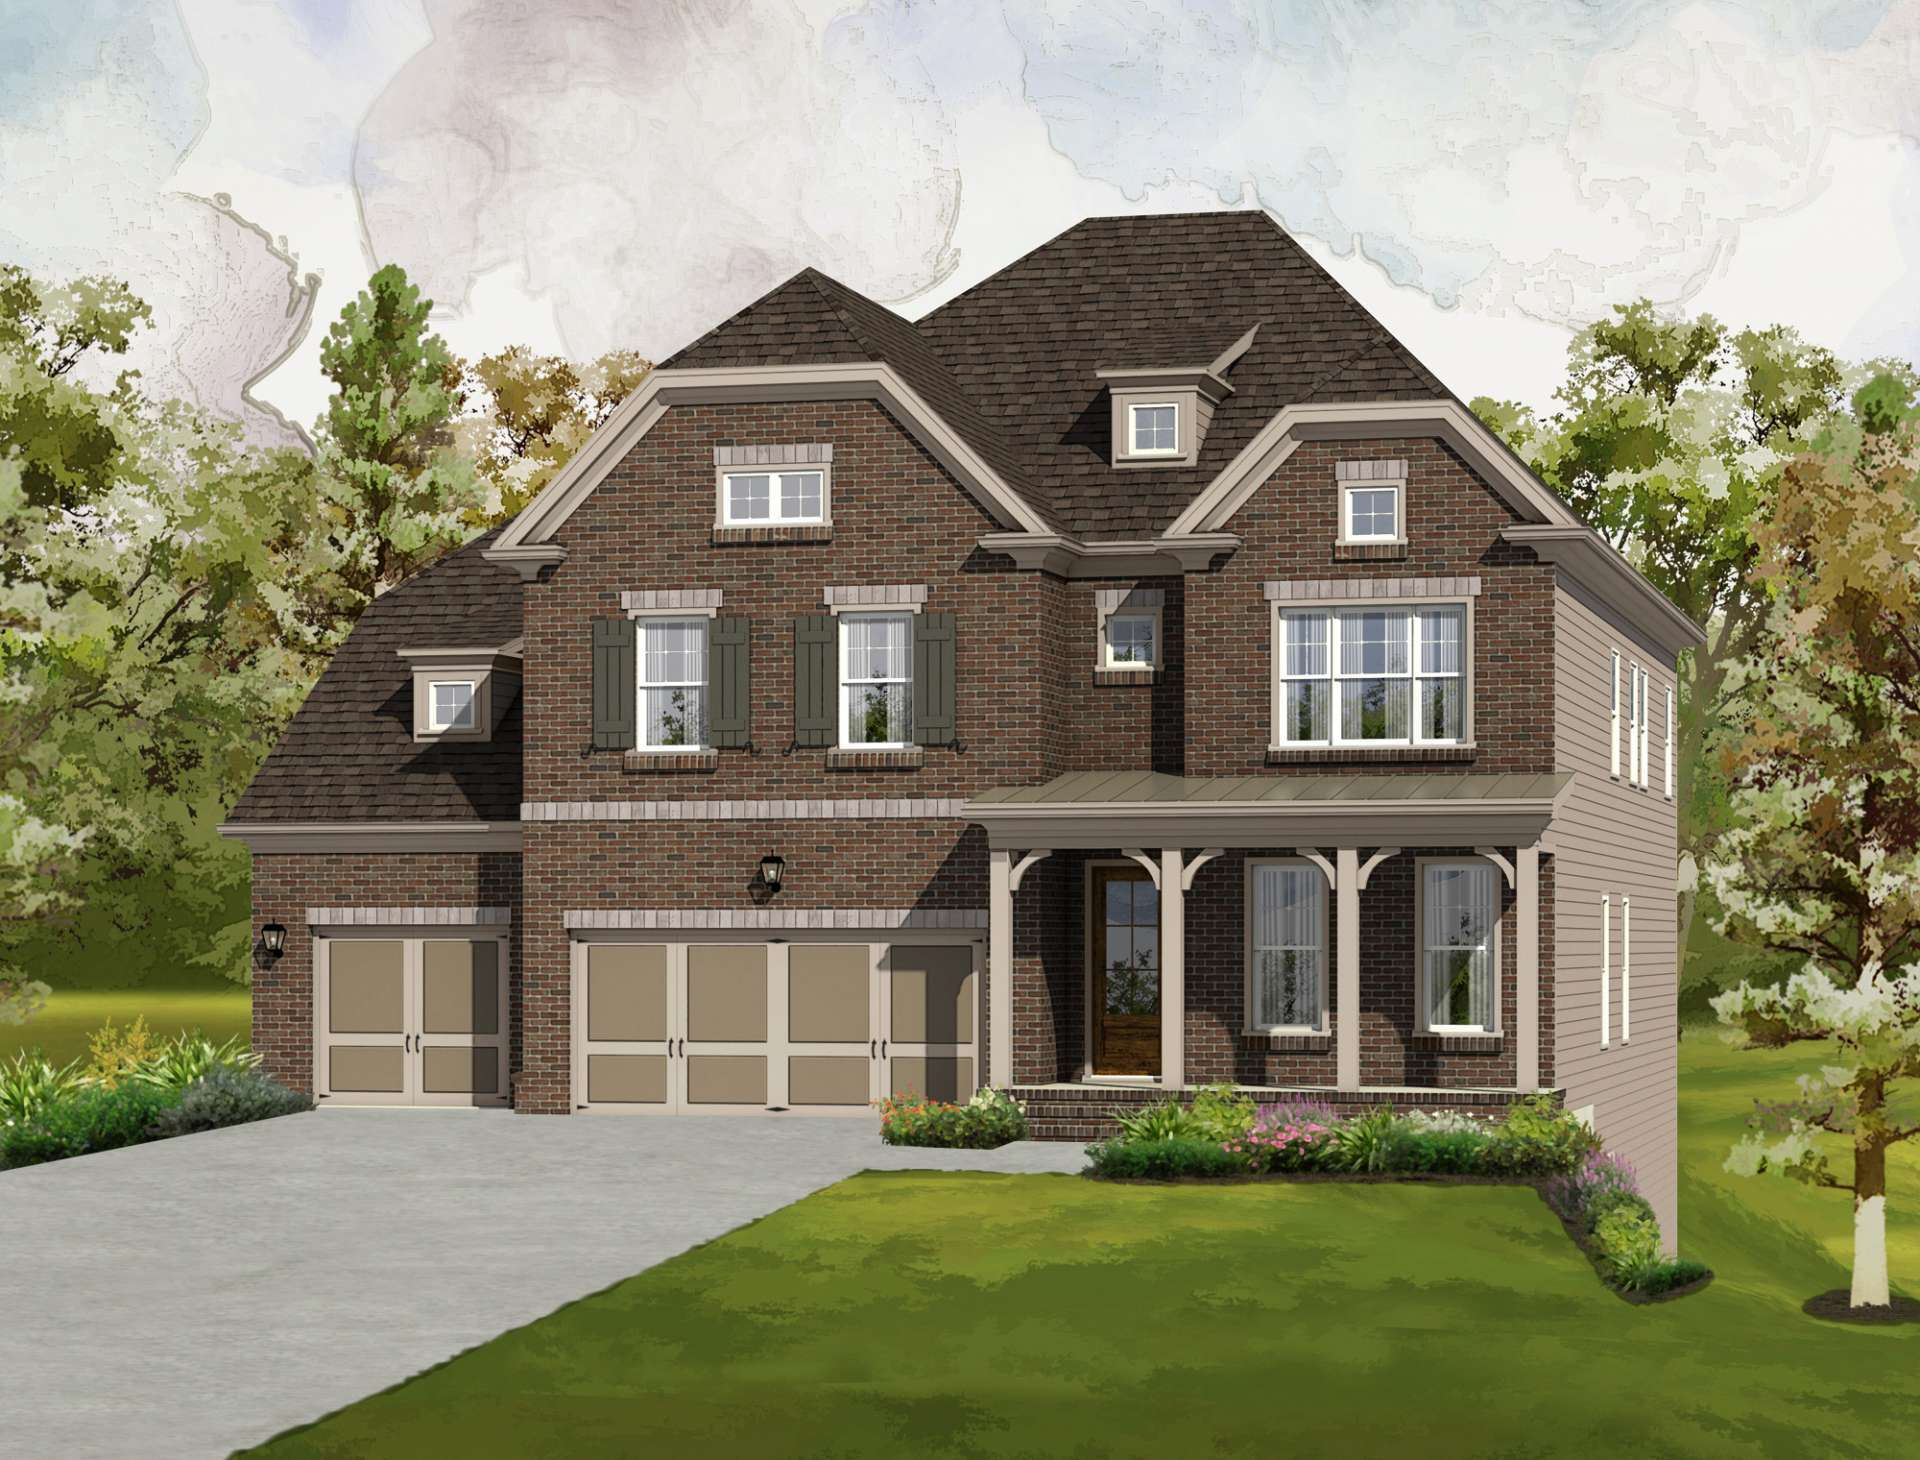 Single Family for Sale at Traditions - The Matthews 4015 Alister Park Drive Cumming, Georgia 30040 United States